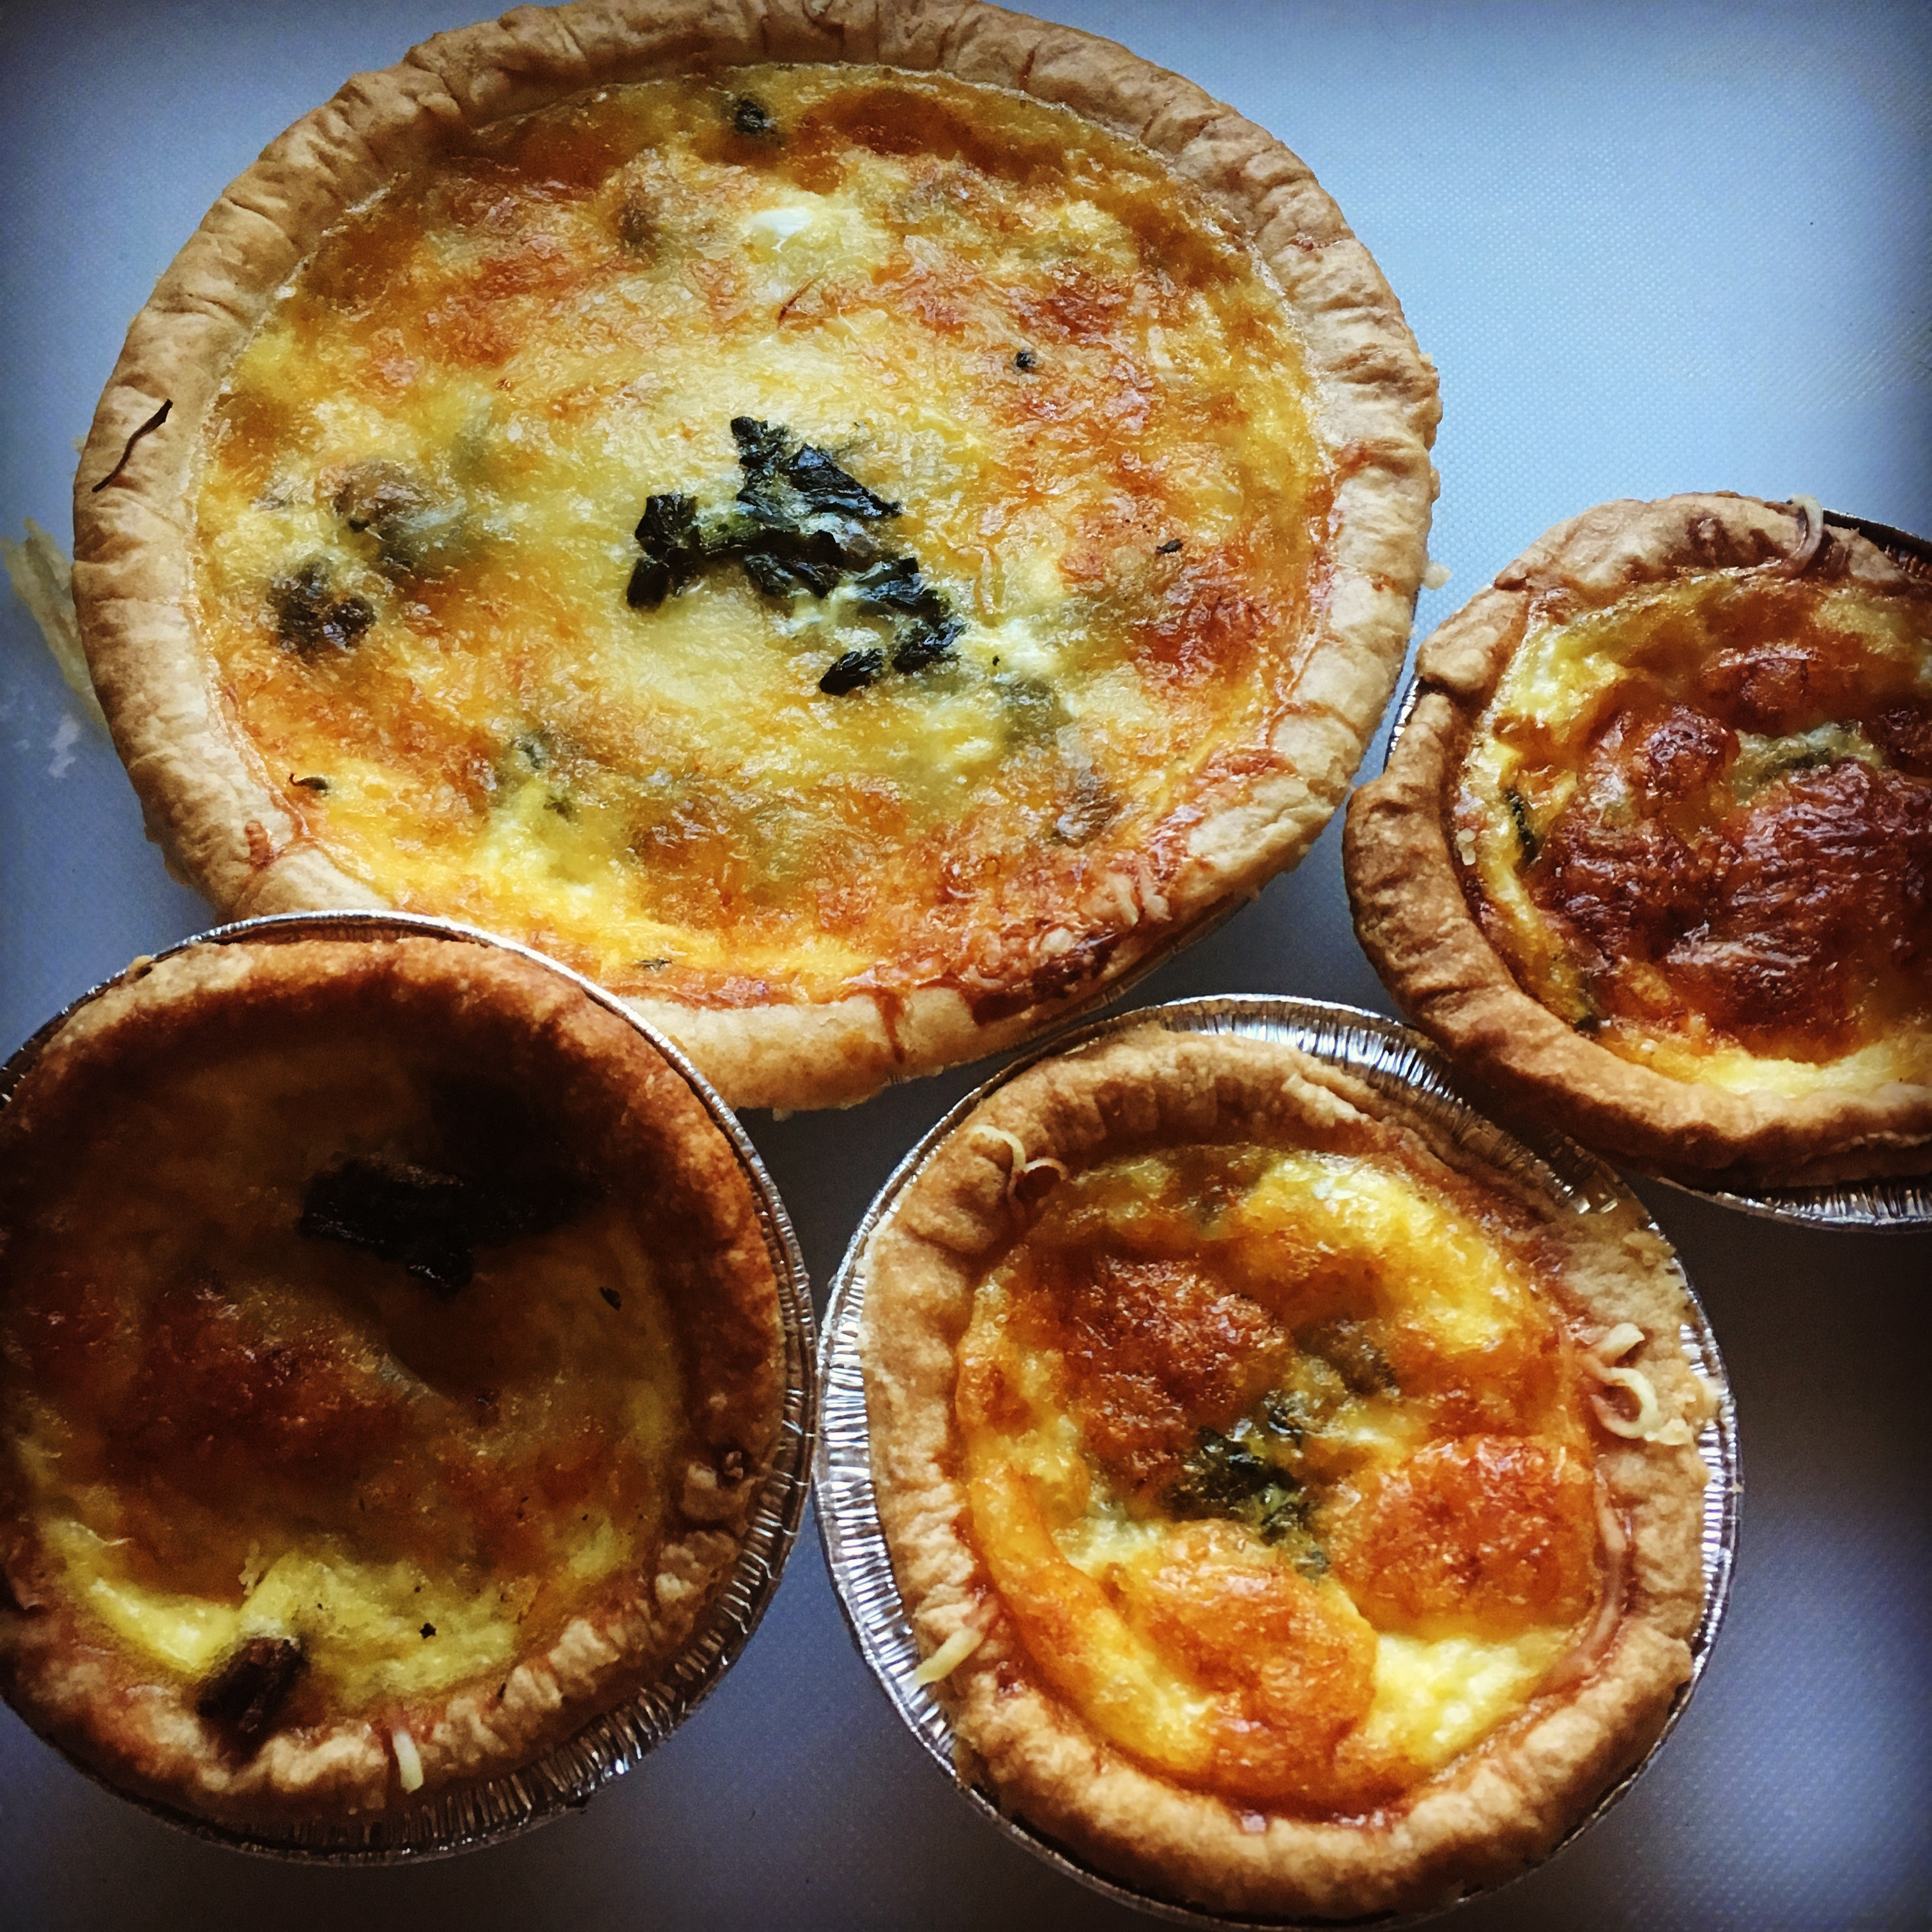 Brooklyn Biscuit Co. Quiches